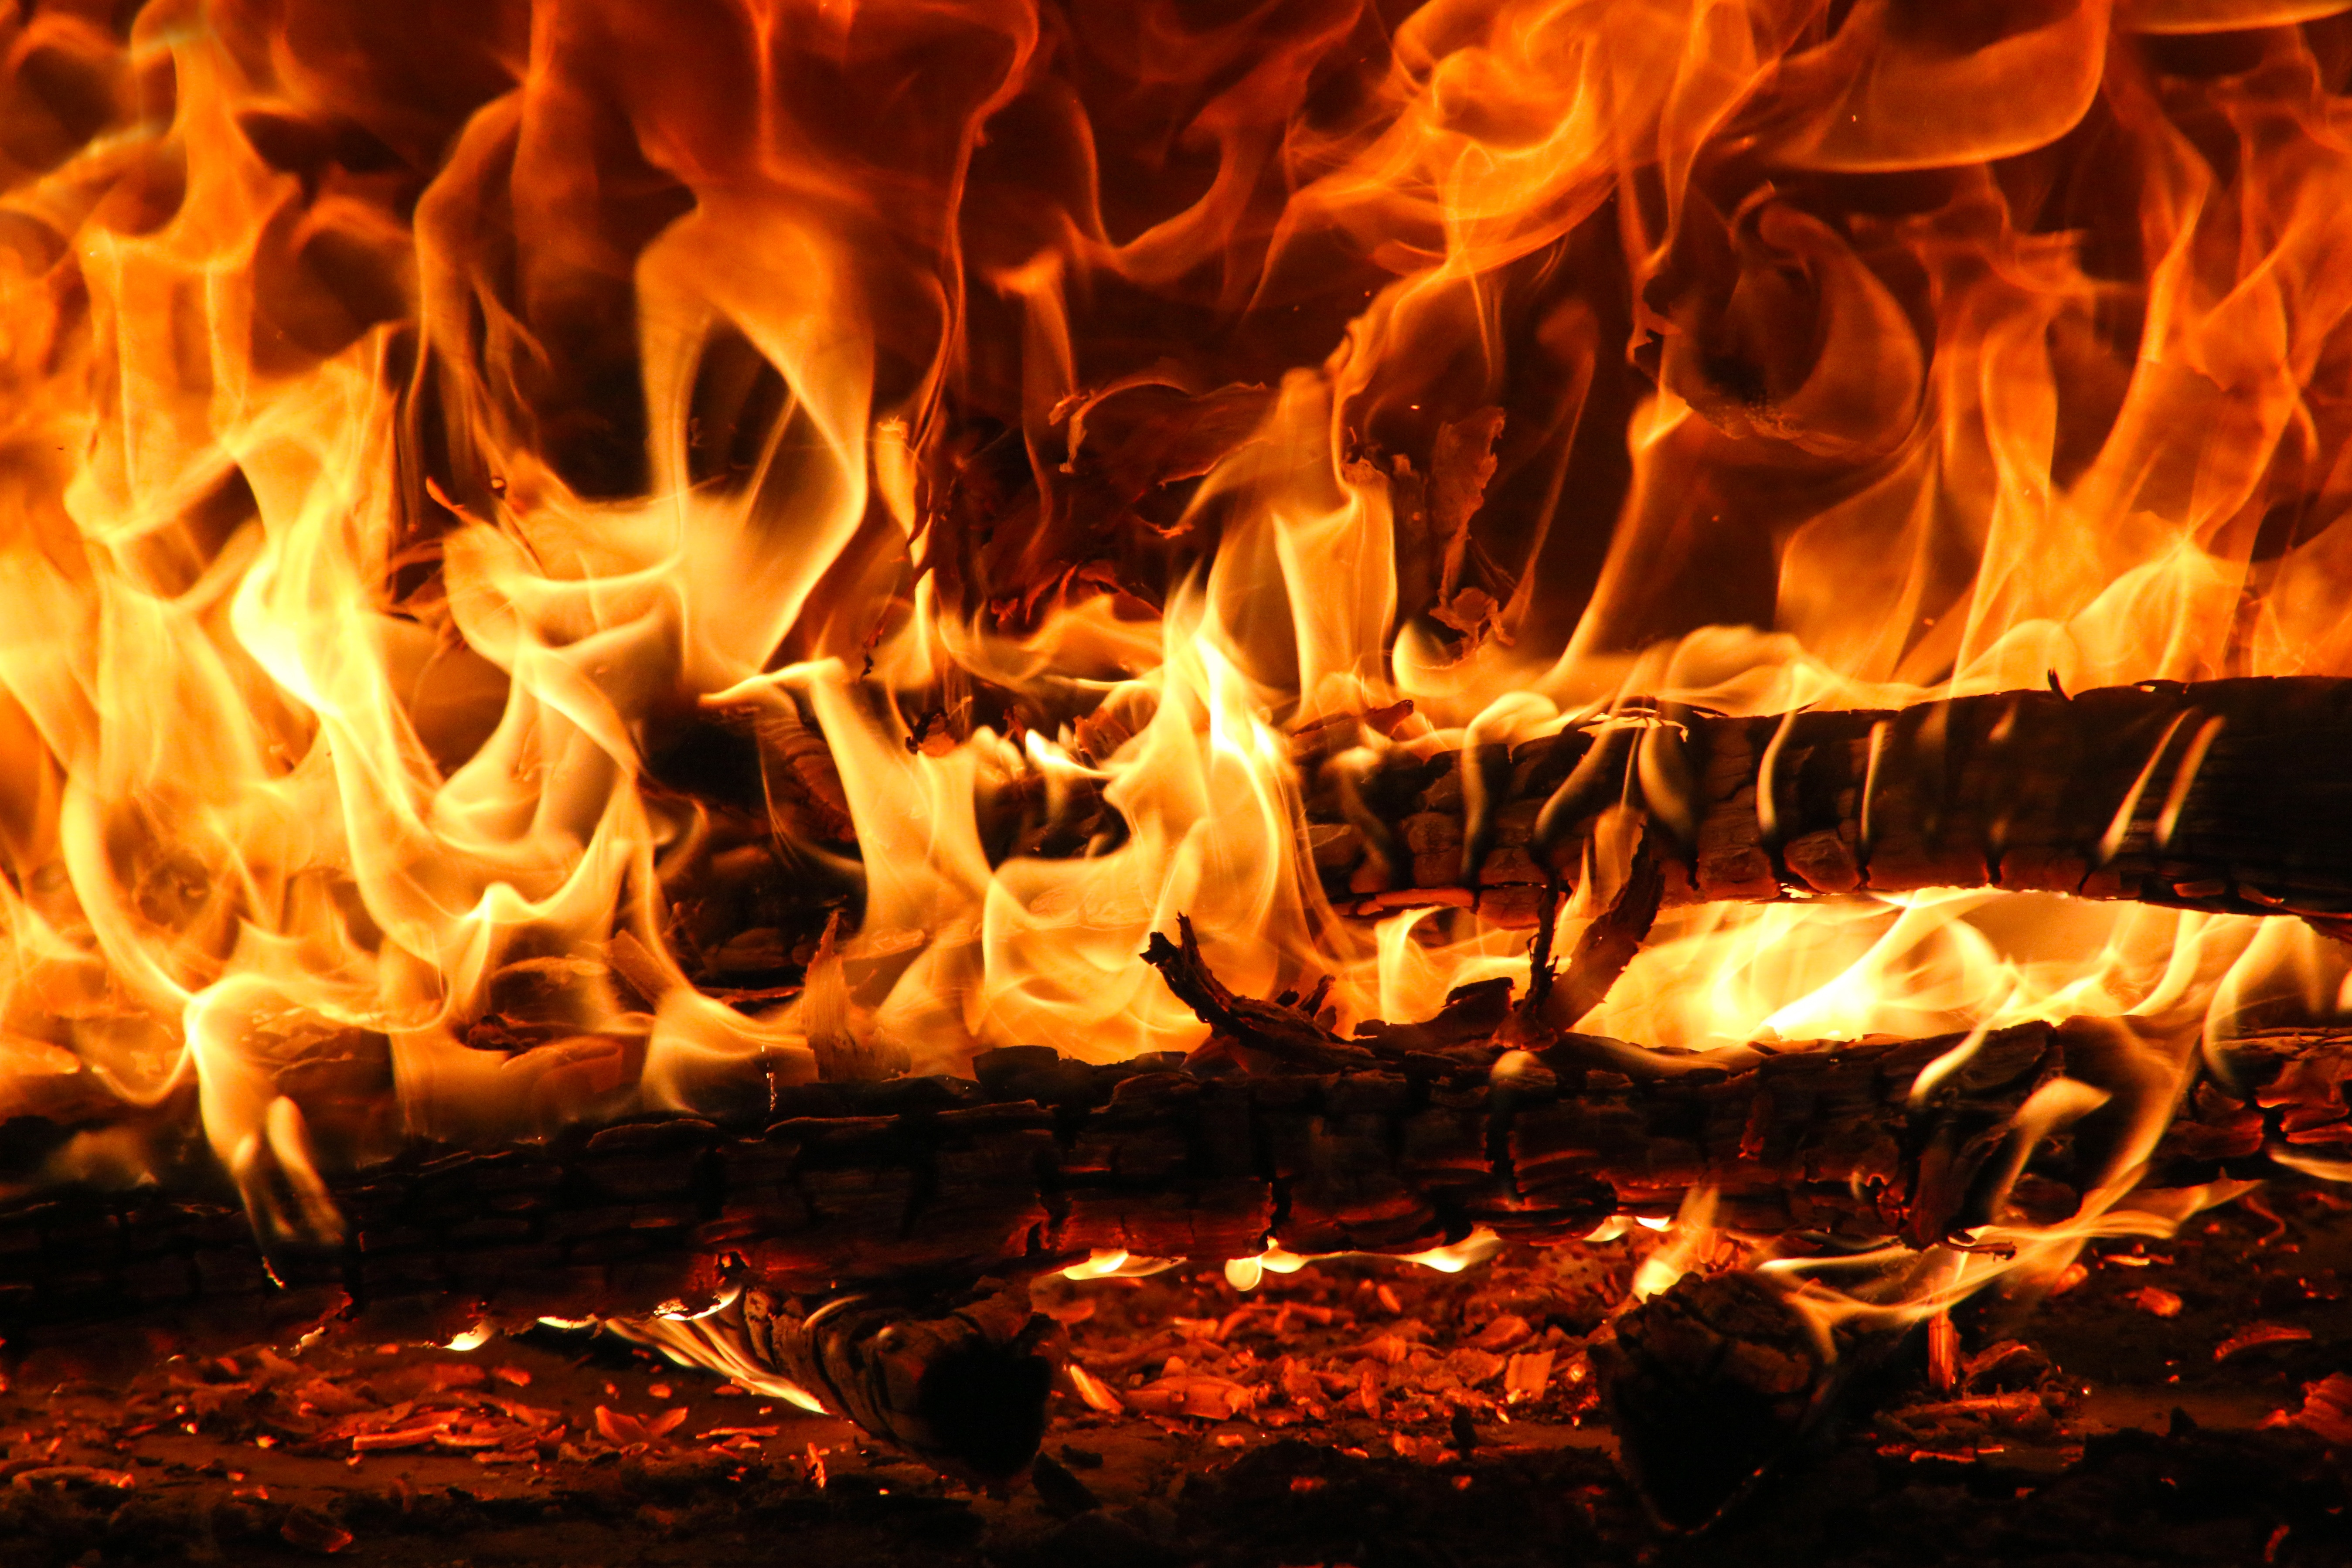 103237 Screensavers and Wallpapers Bonfire for phone. Download Fire, Bonfire, Coals, Dark, Flame, Miscellanea, Miscellaneous, Ash pictures for free